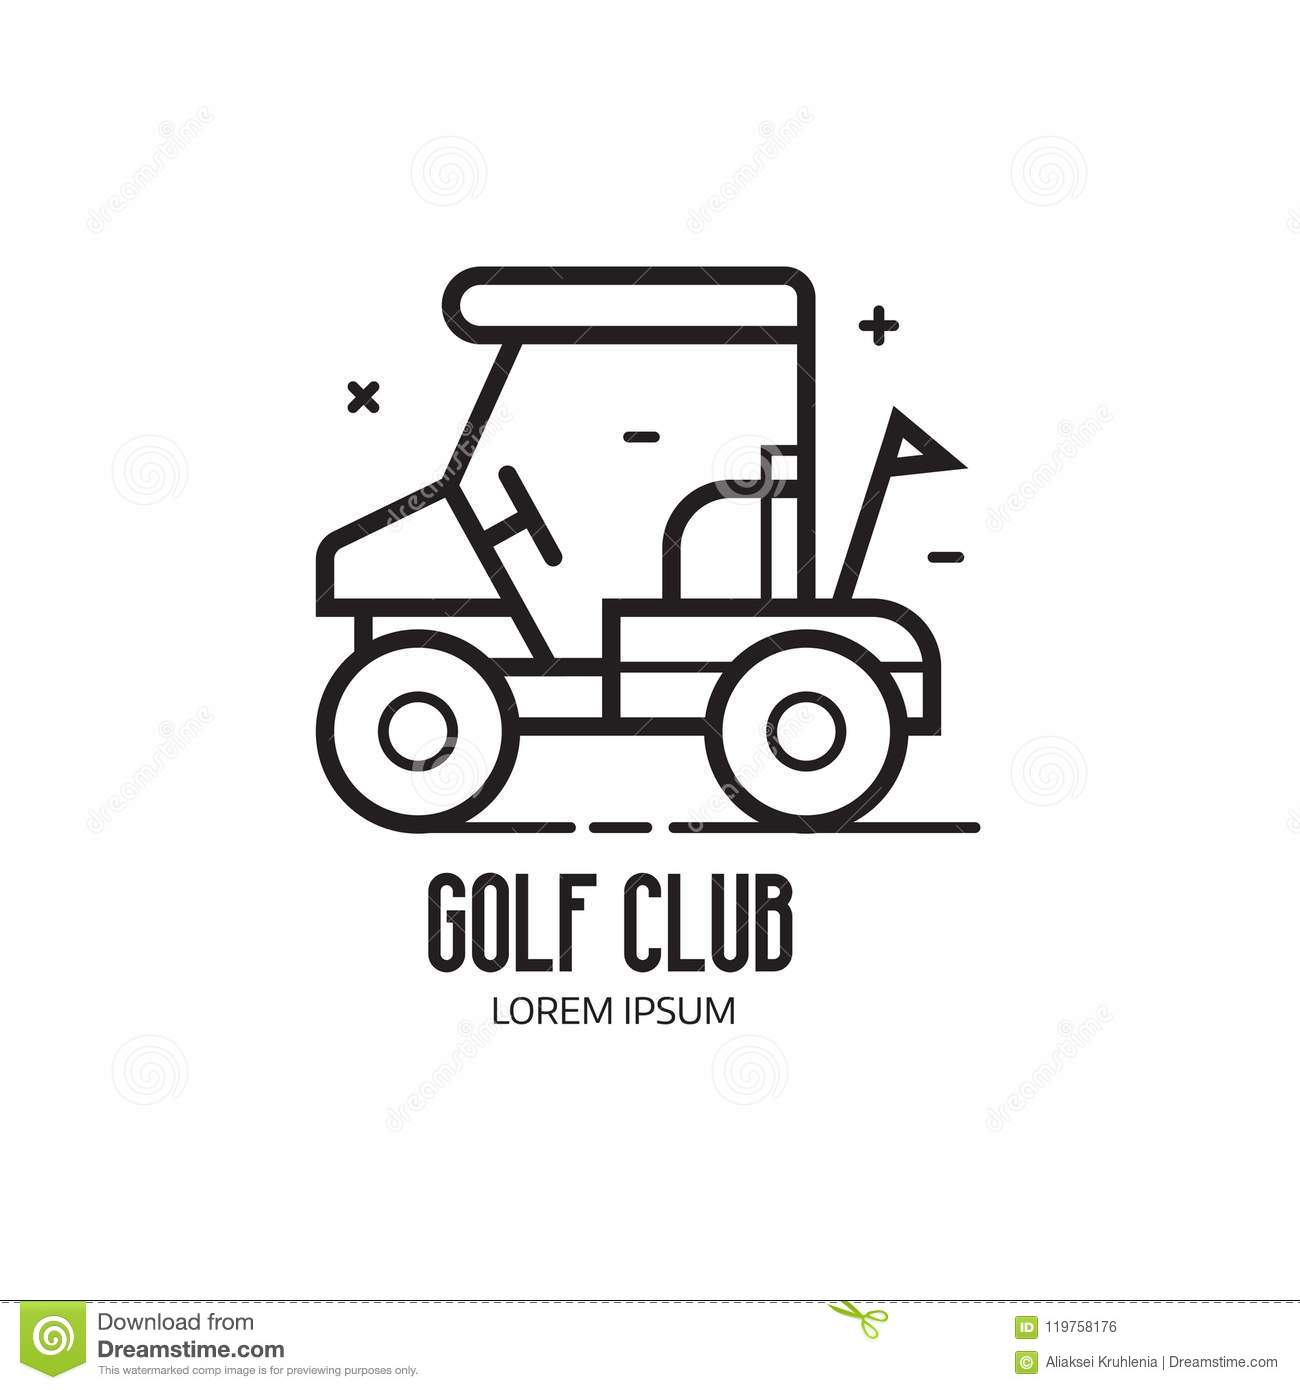 Golf Or Club Logotype With Cart Stock Vector - Illustration ... Driver Golf Cart Clip Art on vehicle clip art, golf club clip art, atv clip art, motorcycles clip art, golf outing clip art, car clip art, kayak clip art, golf borders clip art, golf flag clip art, grill clip art, hole in one clip art, high quality golf clip art, motorhome clip art, baby clip art, golf tee clip art, funny golf clip art, golf clipart, golfer clip art, computer clip art, forklift clip art,